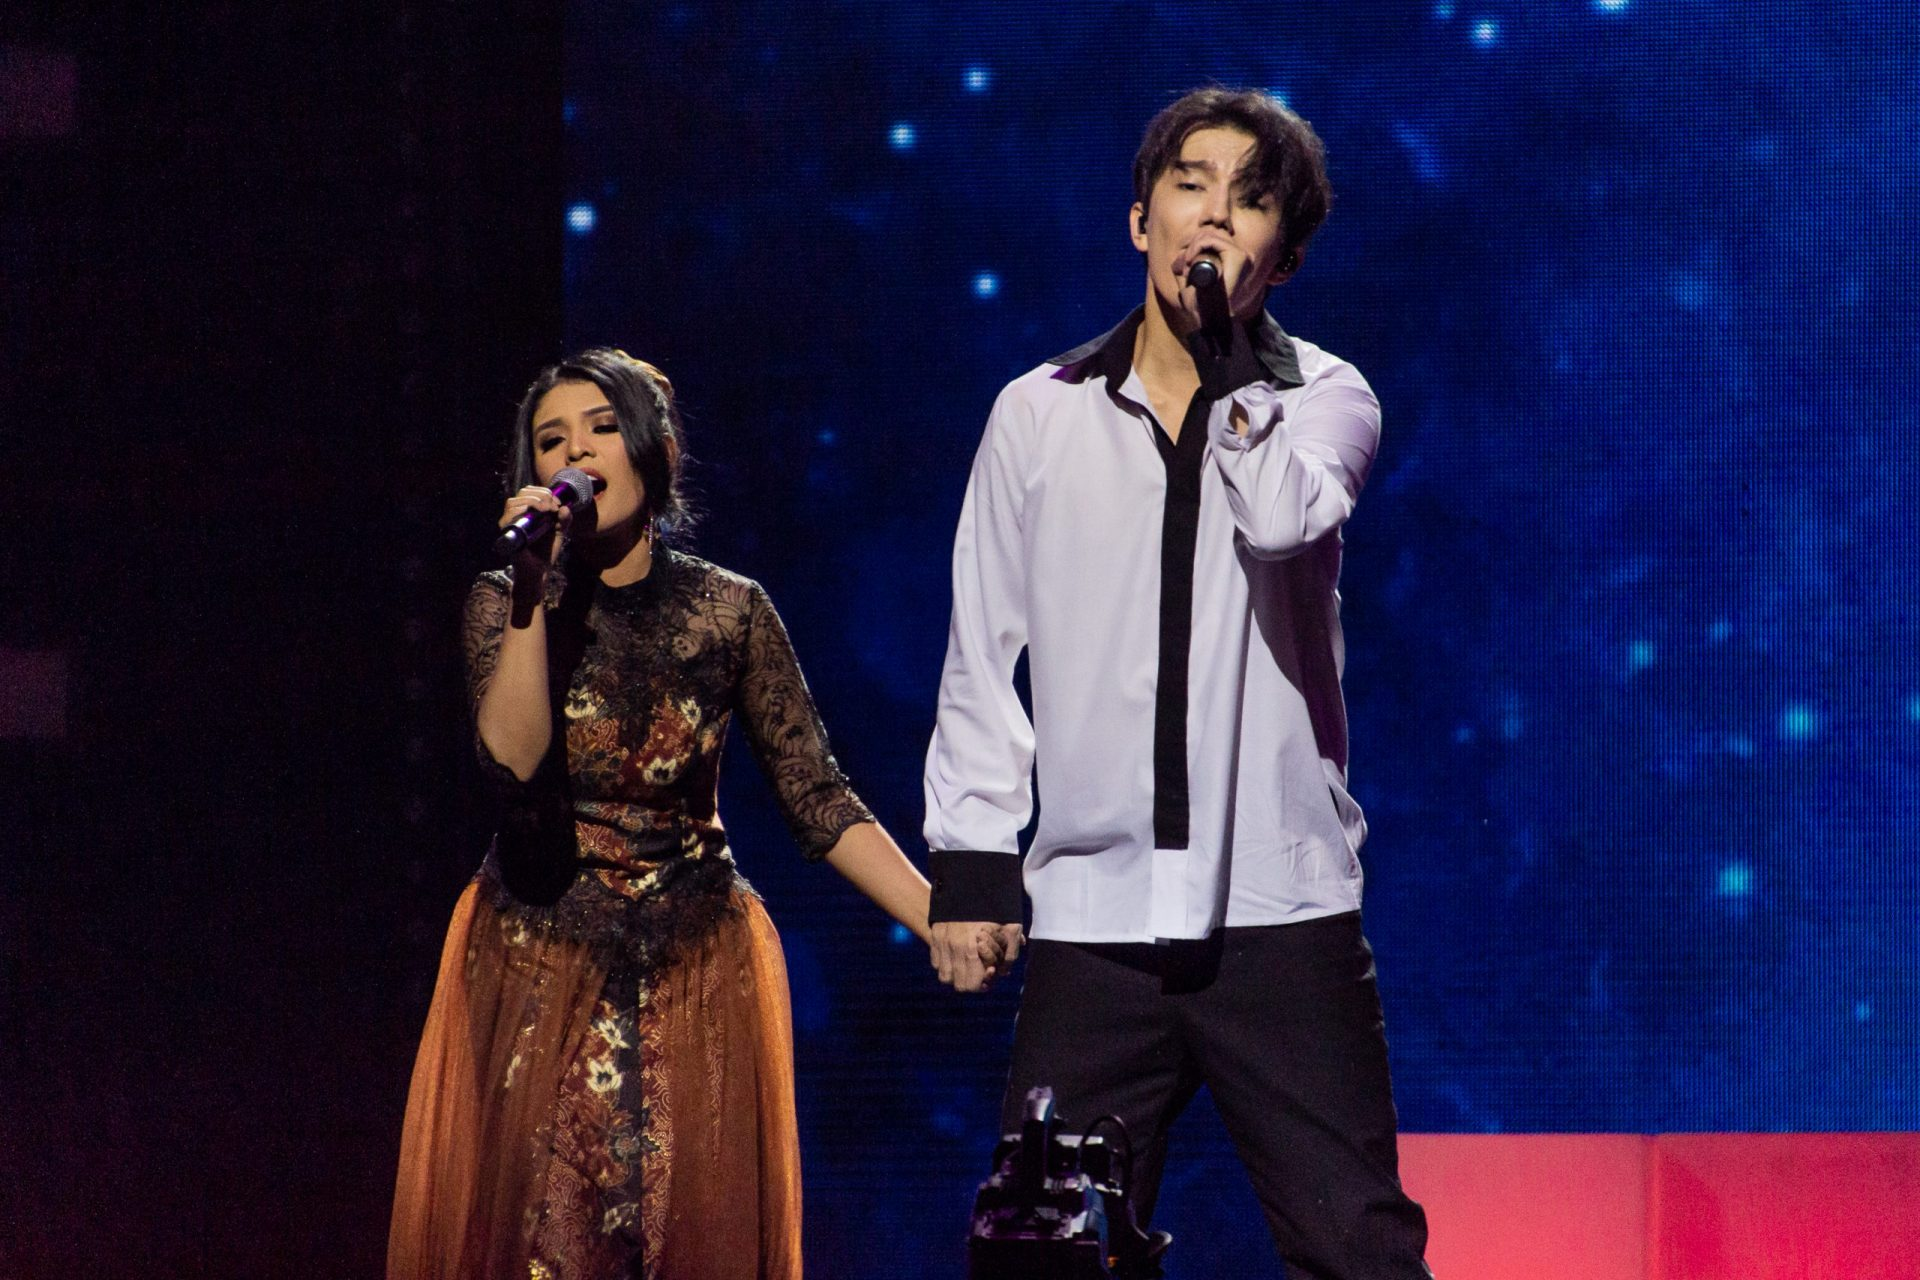 Recap of Dimash Kudaibergen concert in St. Petersburg: a duet with a fan, performance of Dimash's younger brother and unforgettable emotions